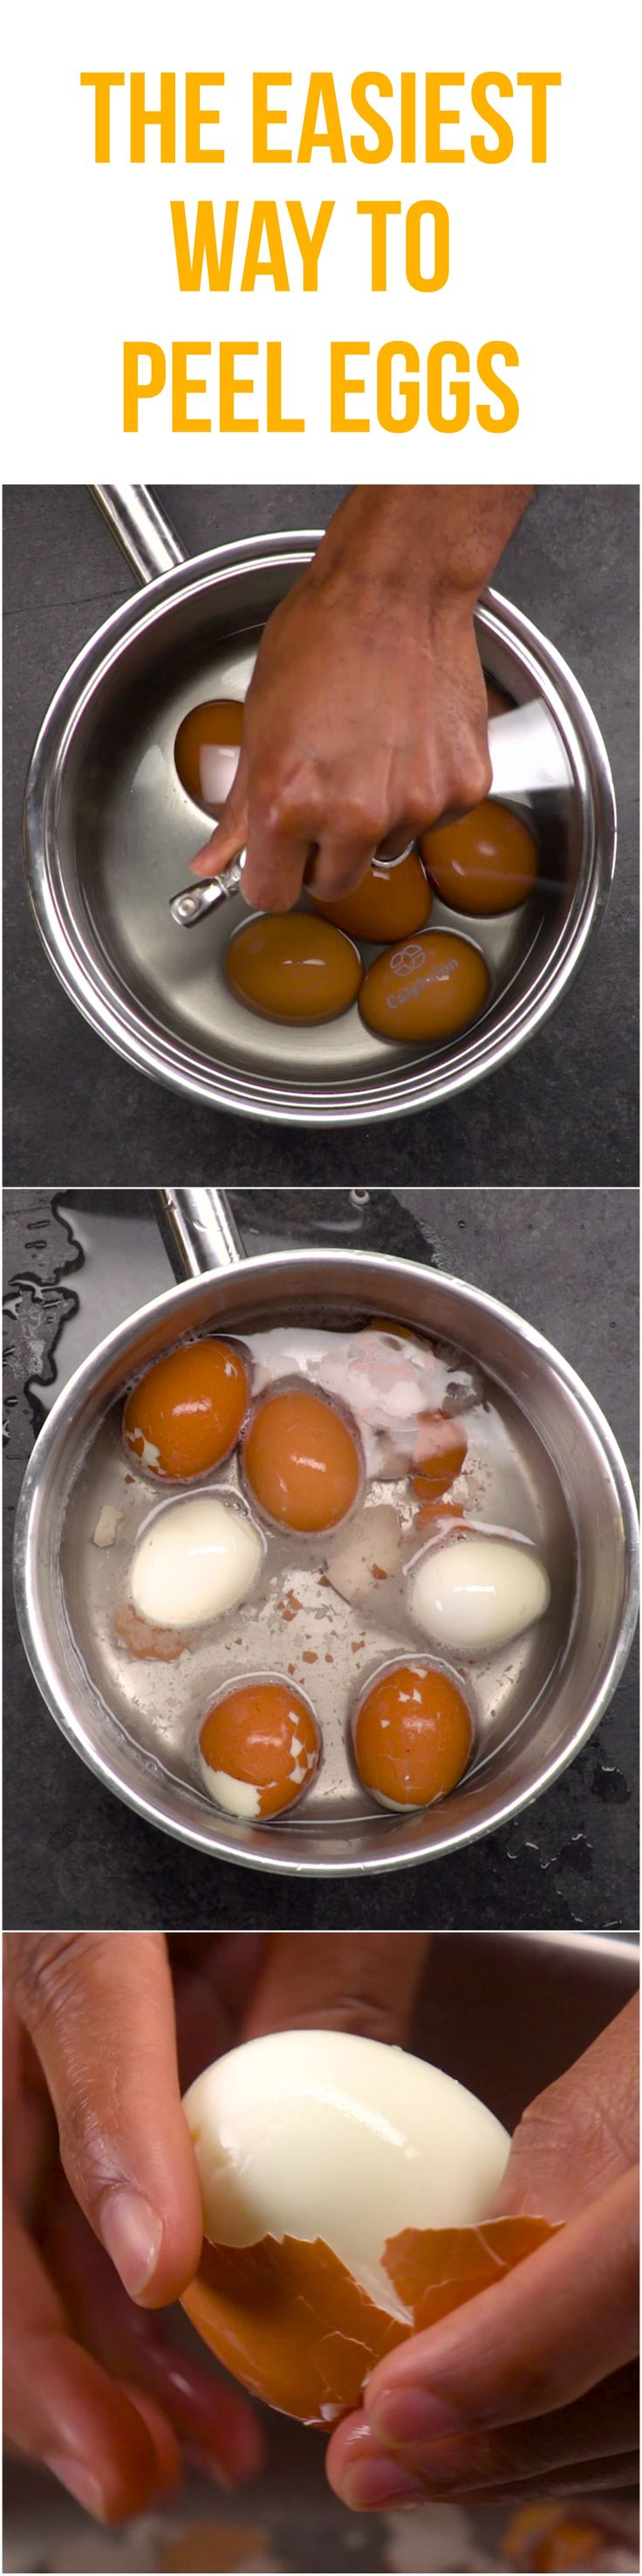 This life-changing tip makes peeling a bunch of boiled eggs eggstraordinarily easy.